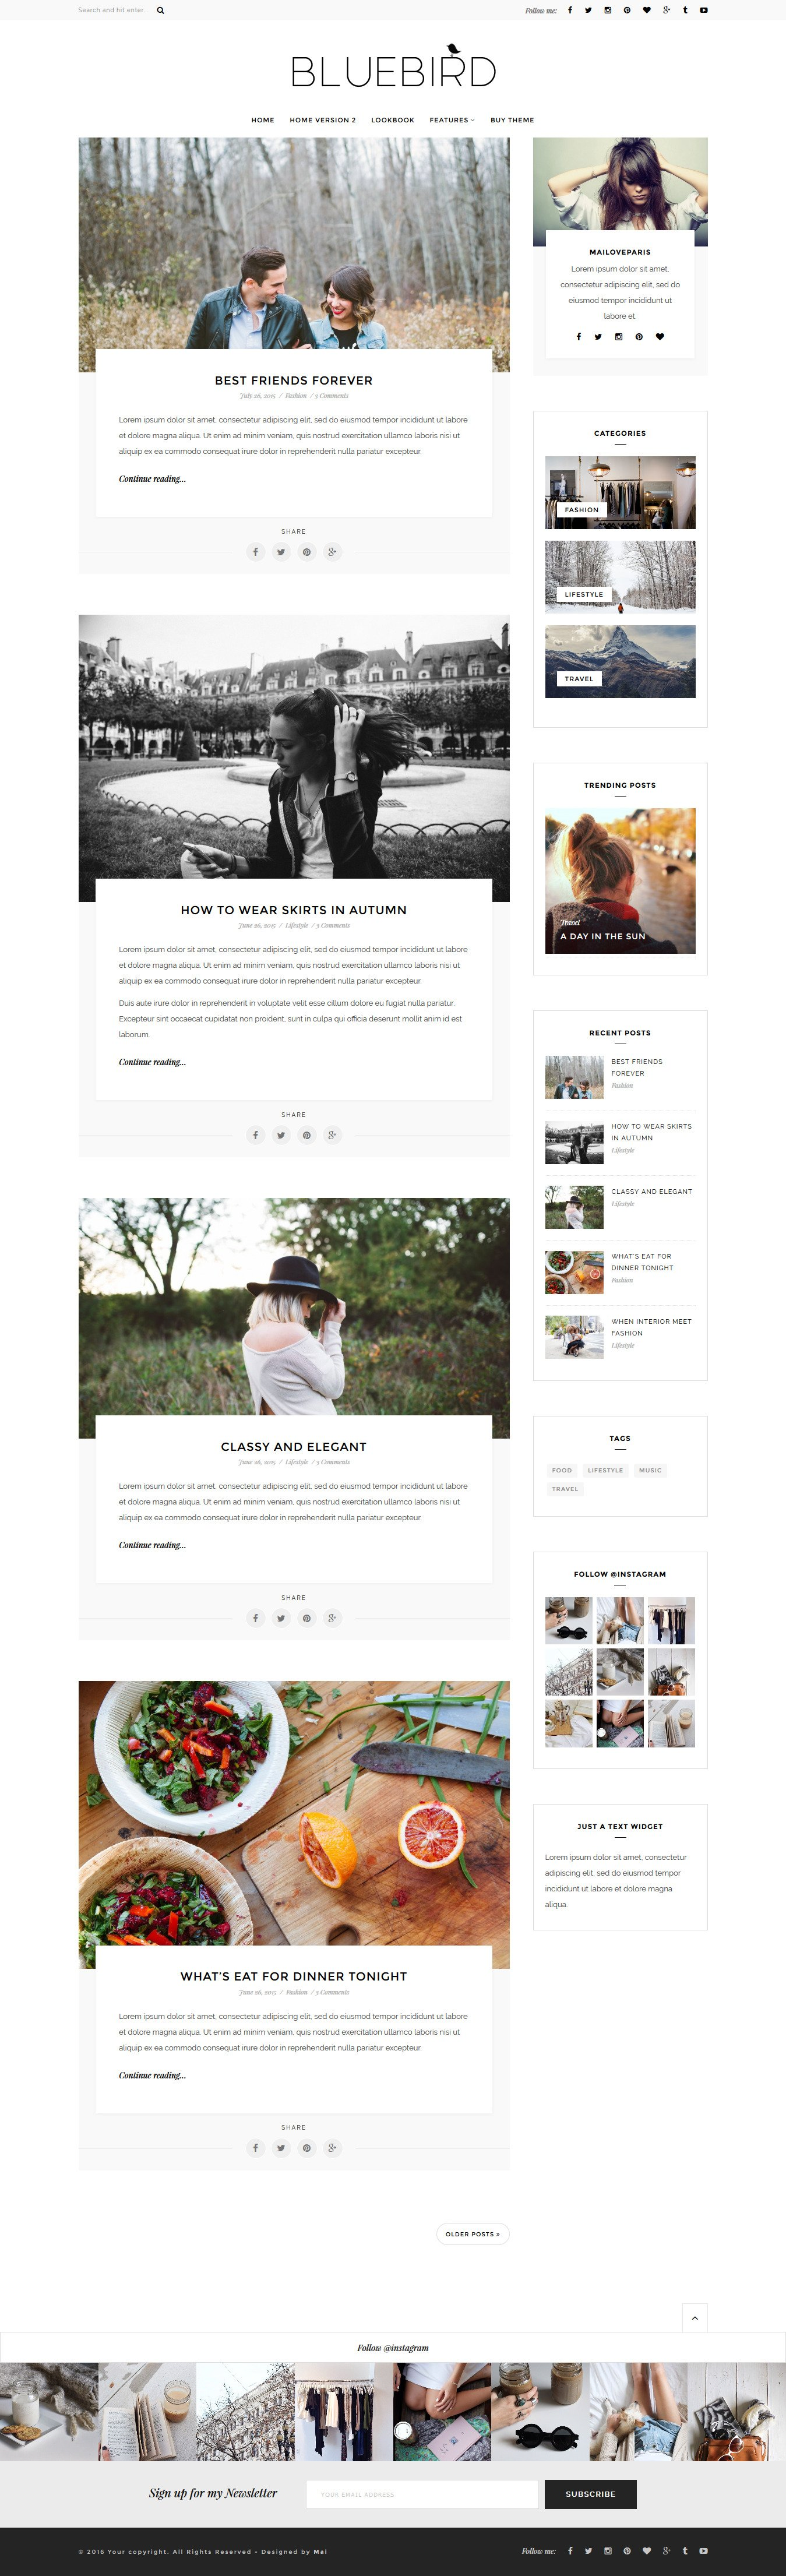 Bluebird WordPress blog theme